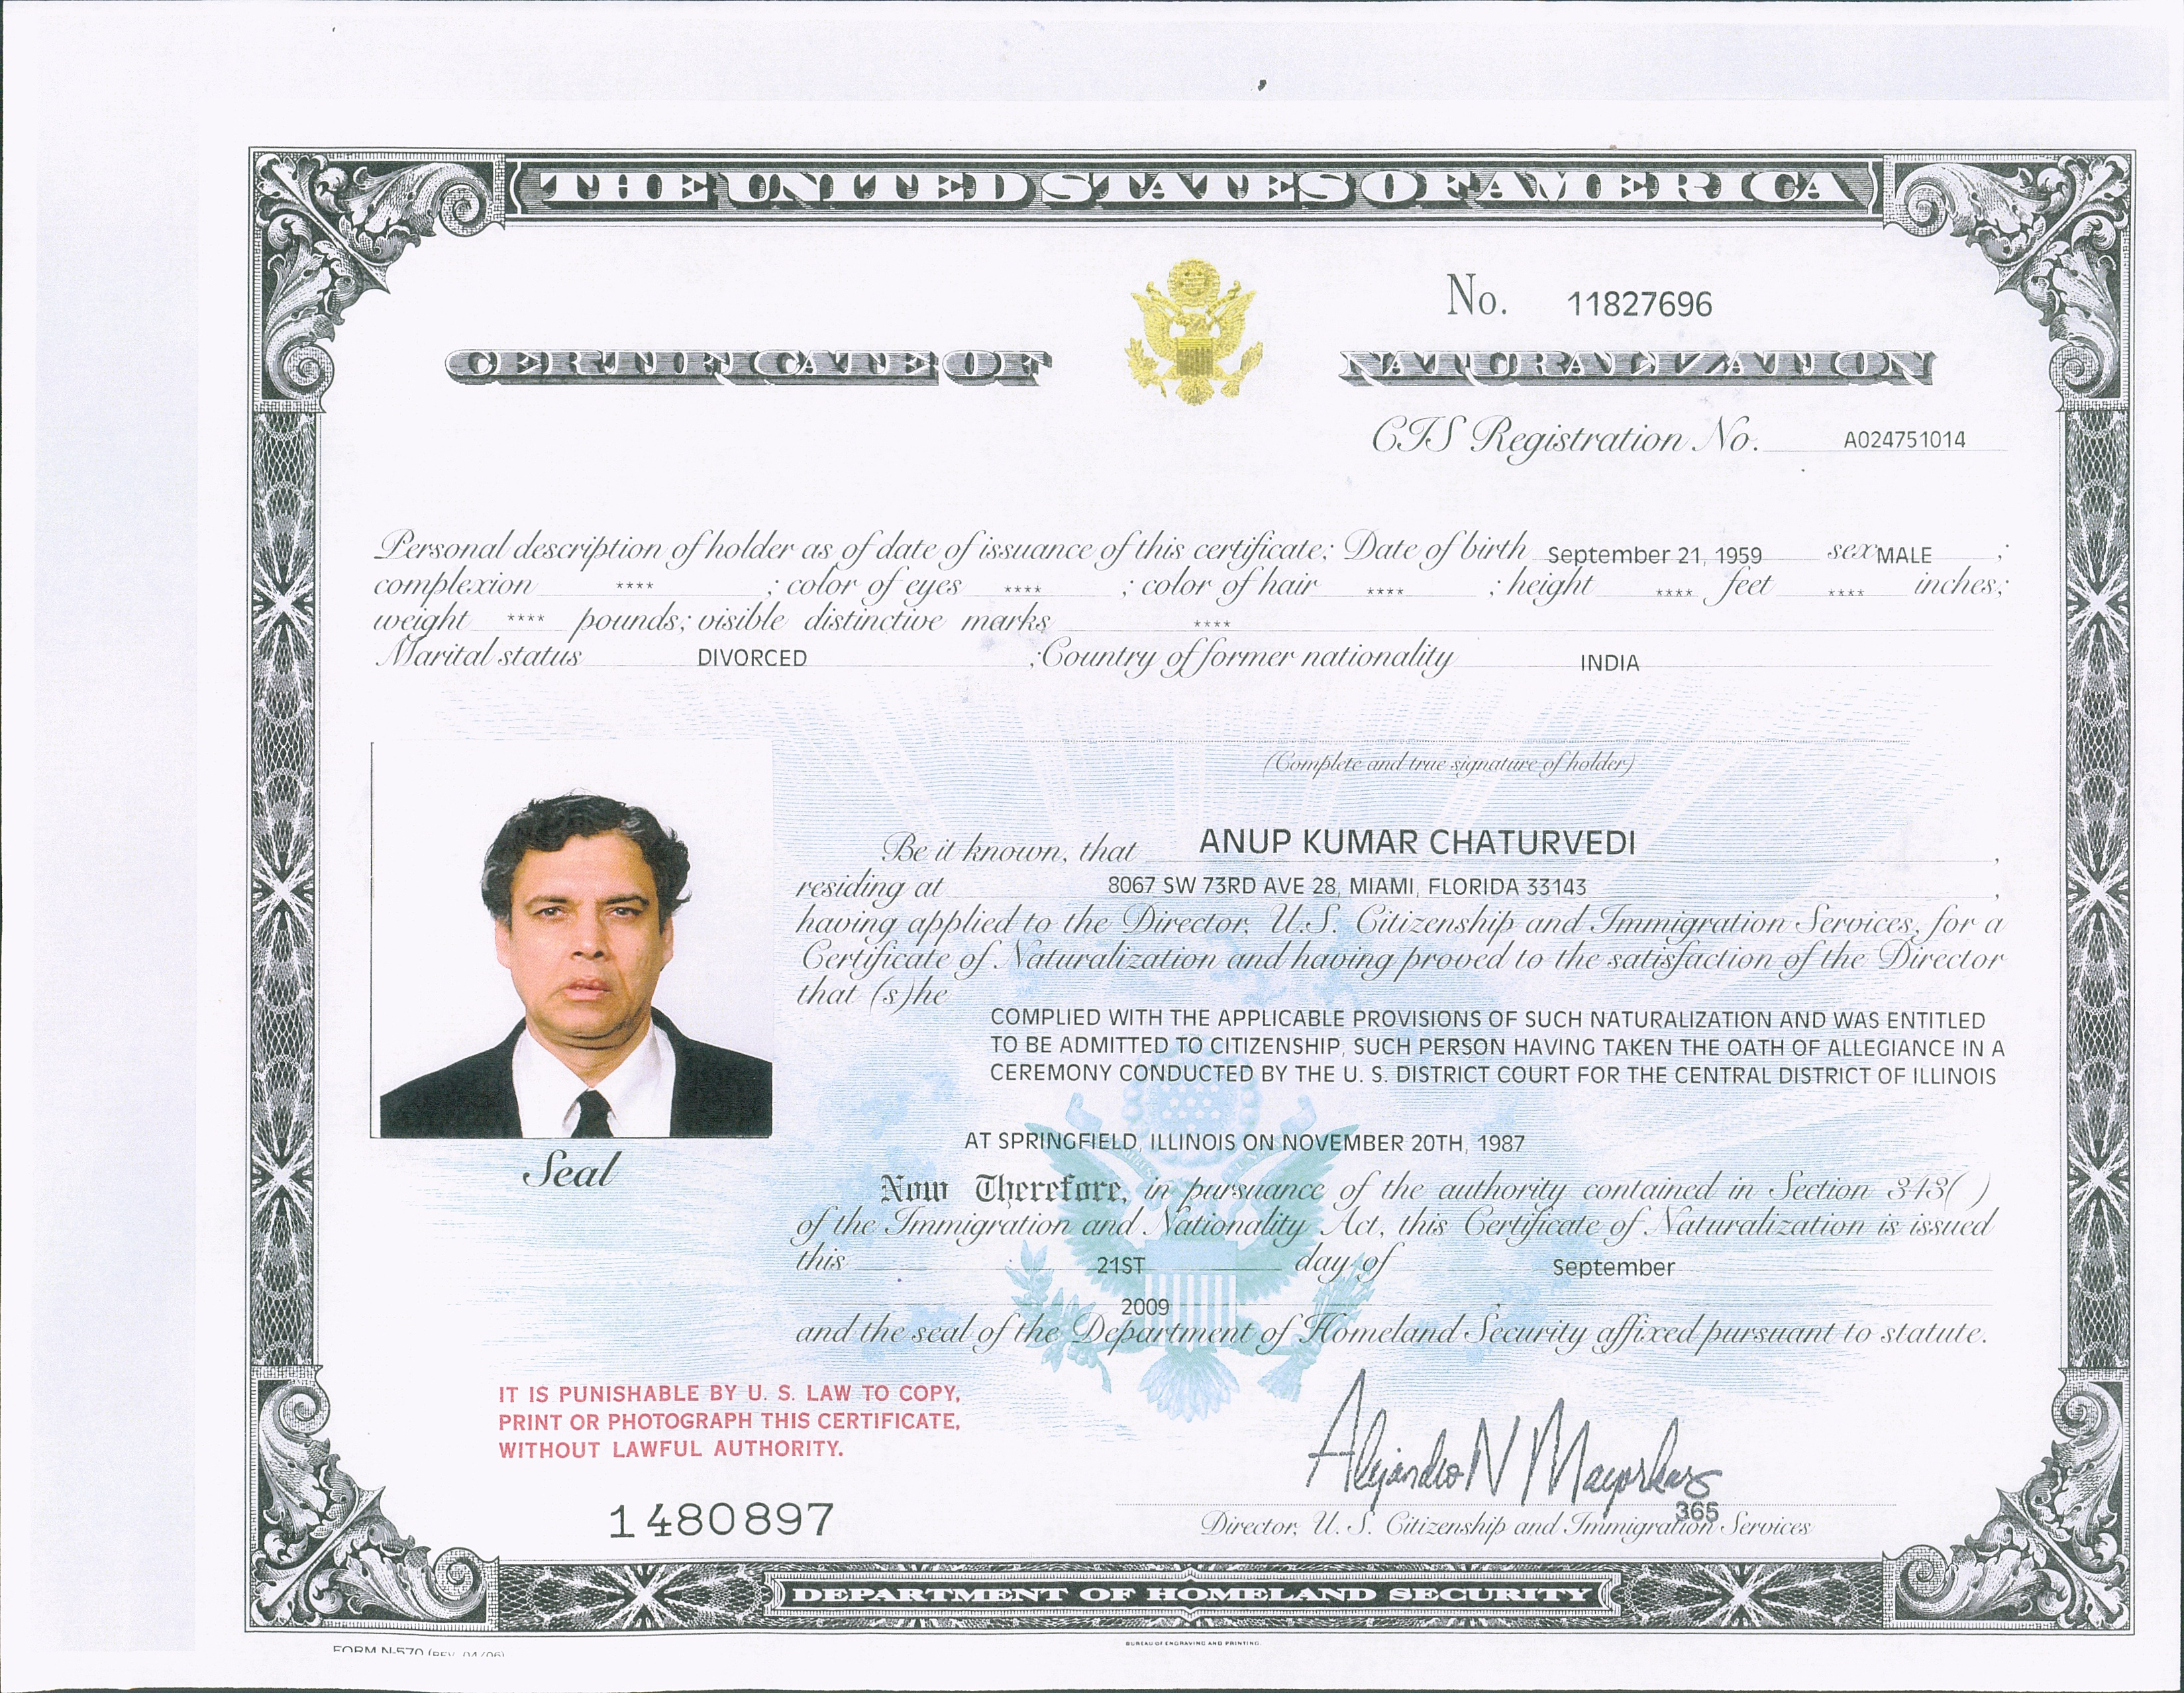 My United States Citizenship Certificate